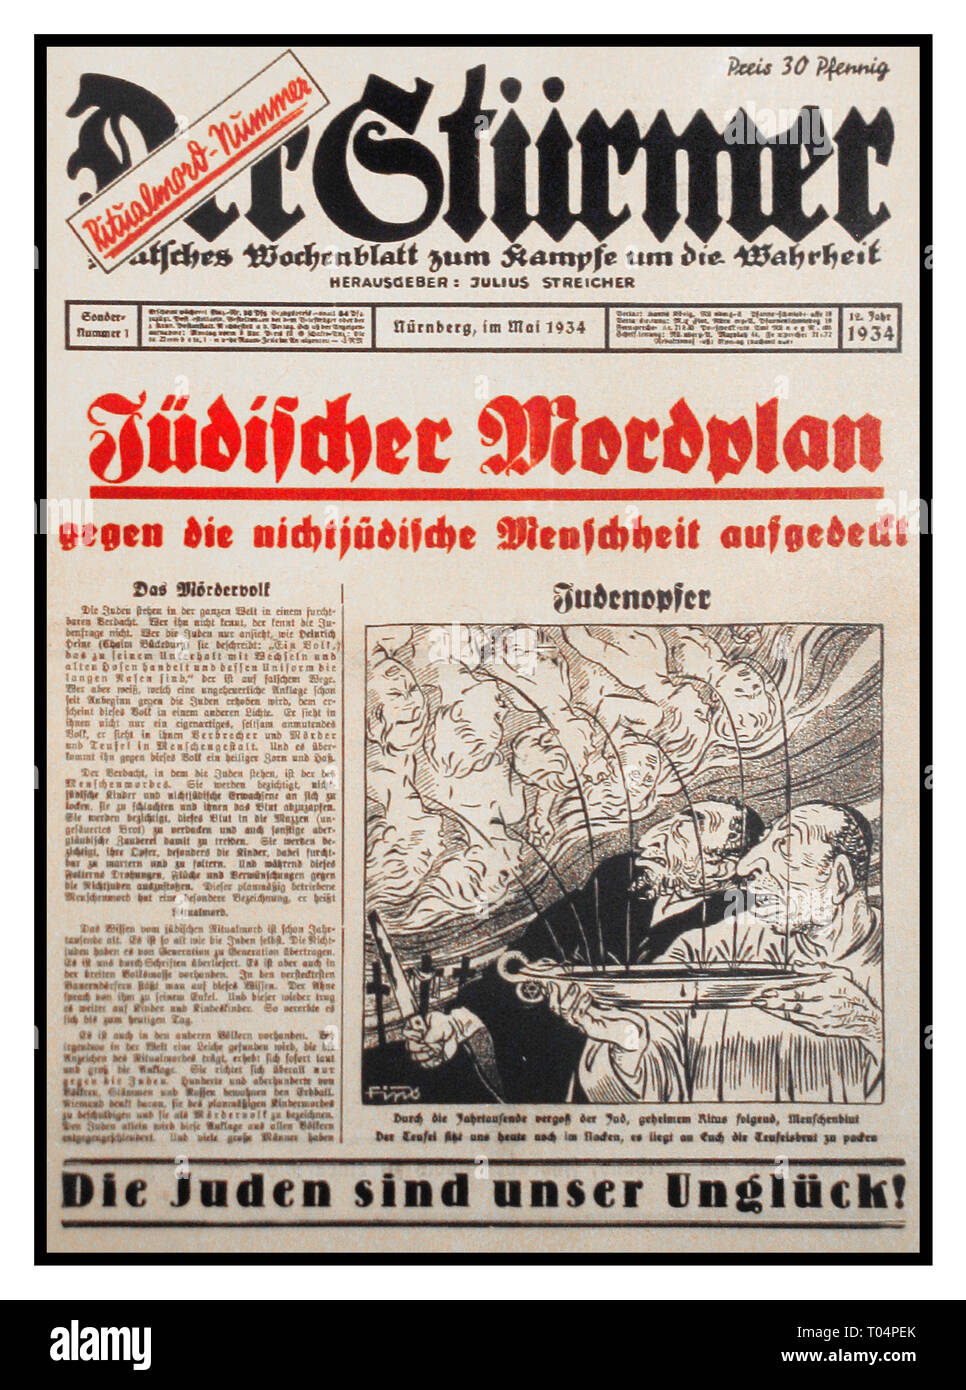 NSDAP Nazi Anti Jewish Racist Propaganda Germany 1934 Der Stürmer Tabloid Newspaper special issue, image shows Jews extracting blood from Christian children for use in religious rituals (an example of the blood libel against Jews) Weekly German newspaper published by Julius Streicher, the Gauleiter of Franconia, from 1923 to the end of World War II Nuremberg Nazi Germany During WW2 Streicher regularly authorized articles demanding the annihilation and extermination of the Jewish race. Der Stürmer was best known for its anti-Semitic caricatures, which depicted Jews as ugly characters - Stock Image